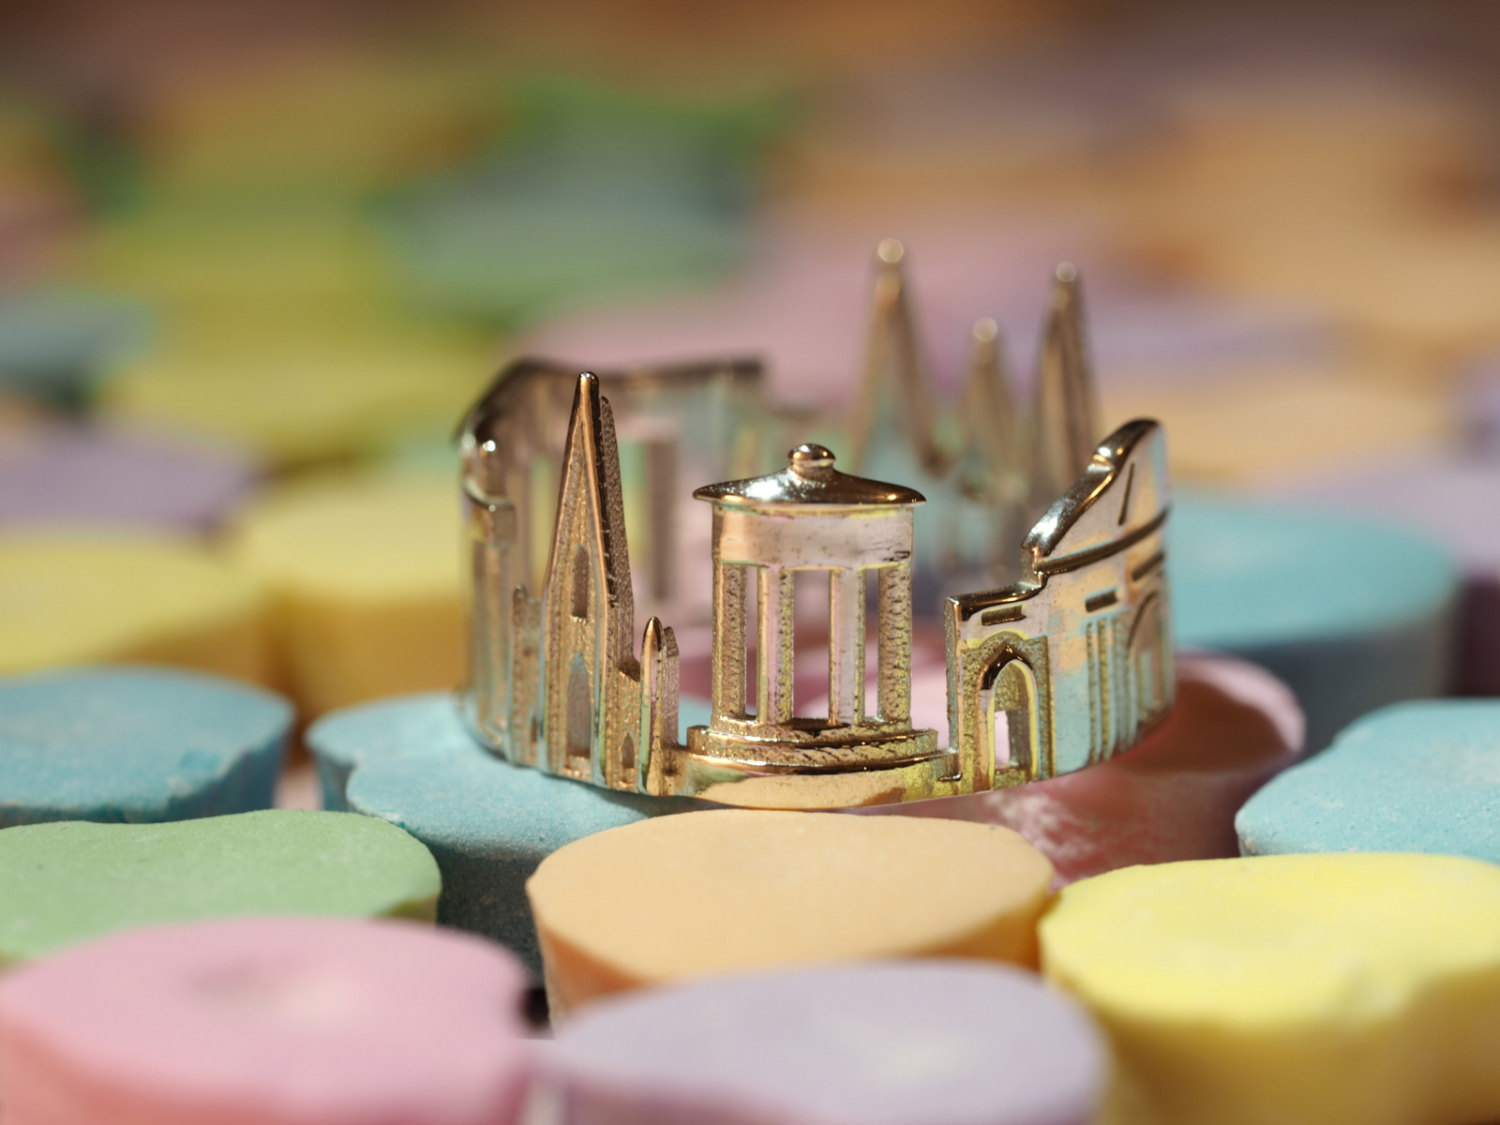 06-Edinburgh-Ola-Shekhtman-Memories-contained-in-Architectural-Cityscape-Skyline-Rings-www-designstack-co